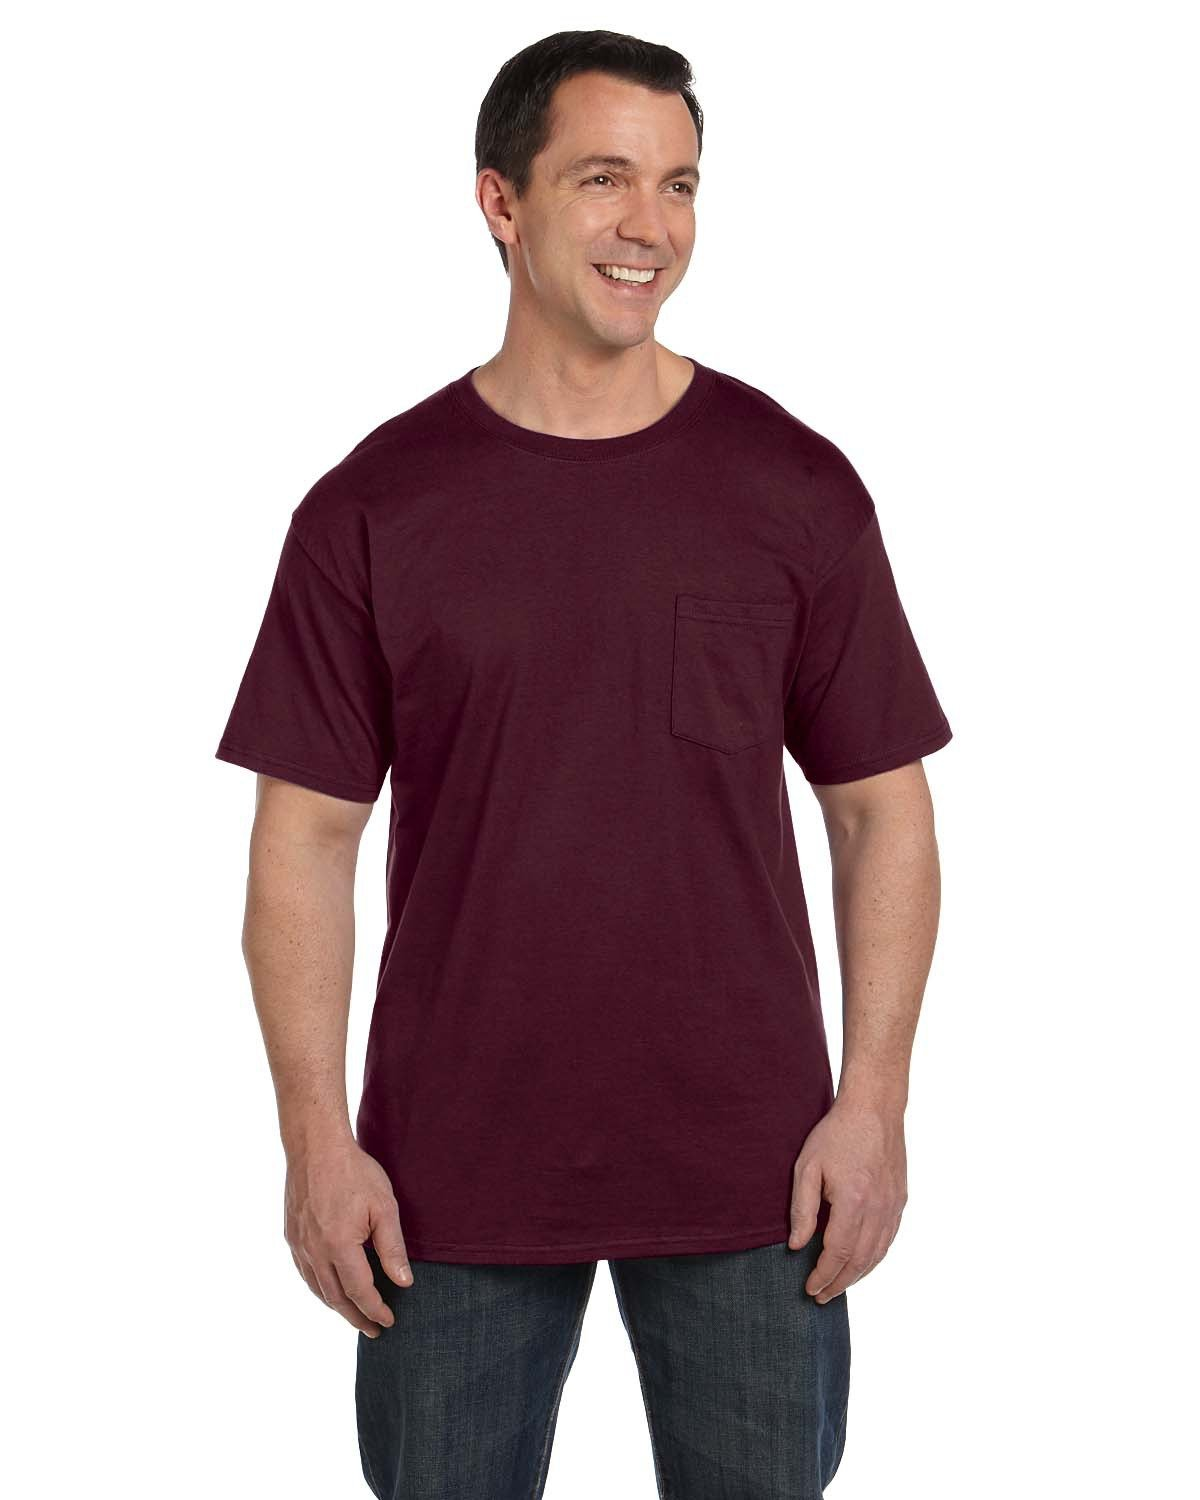 Hanes Adult Beefy-T® with Pocket MAROON